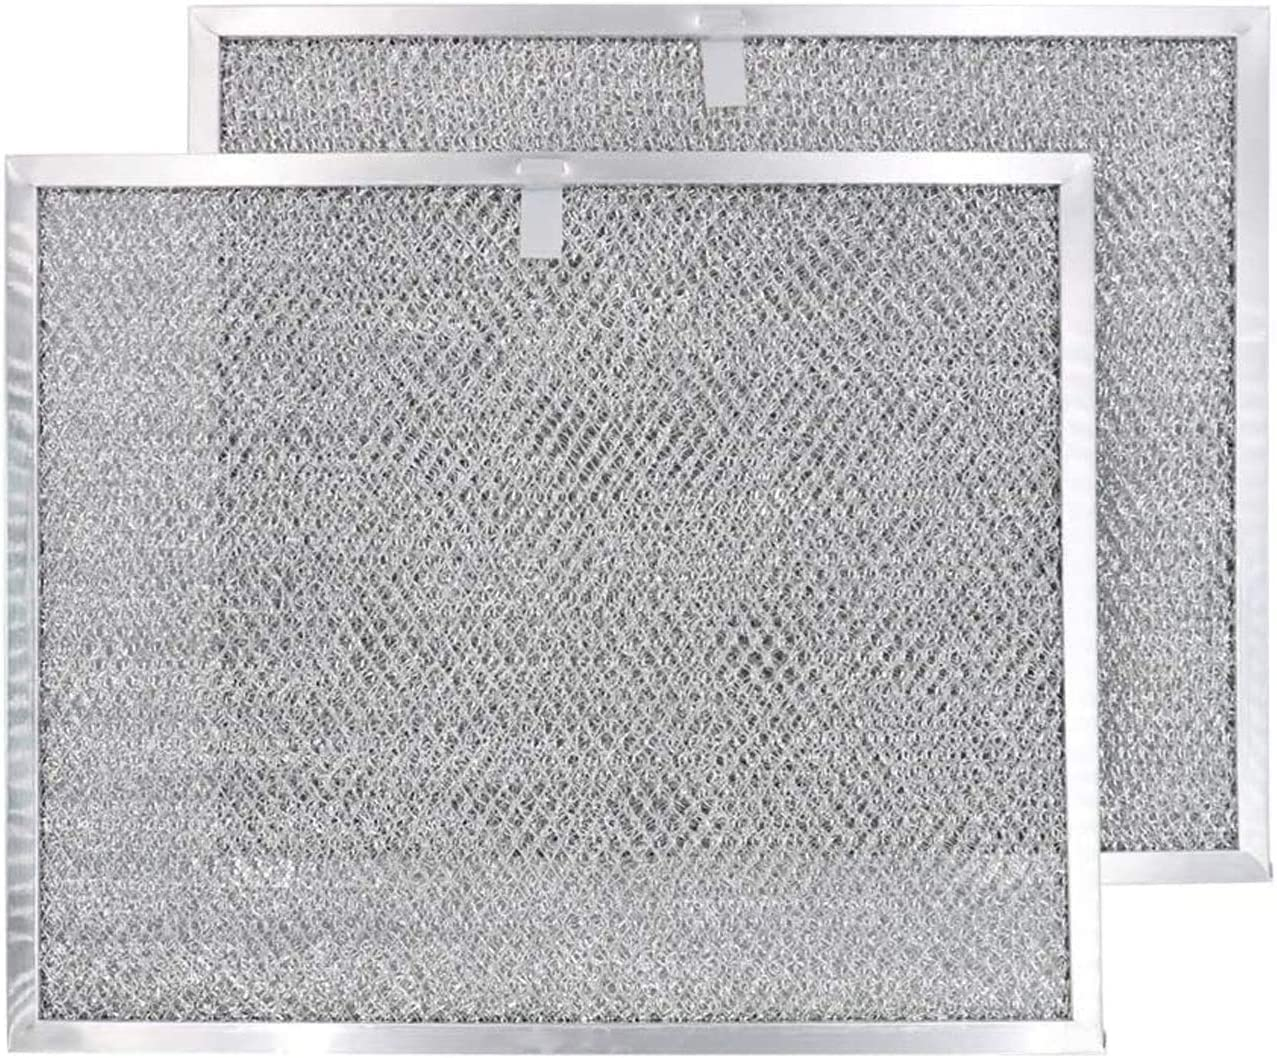 "Range Hood Filter replace Broan Model BPS1FA30, 99010299 for NuTone Allure WS1 QS2 and Broan QS1 30"" Range Hoods 2-Pack"